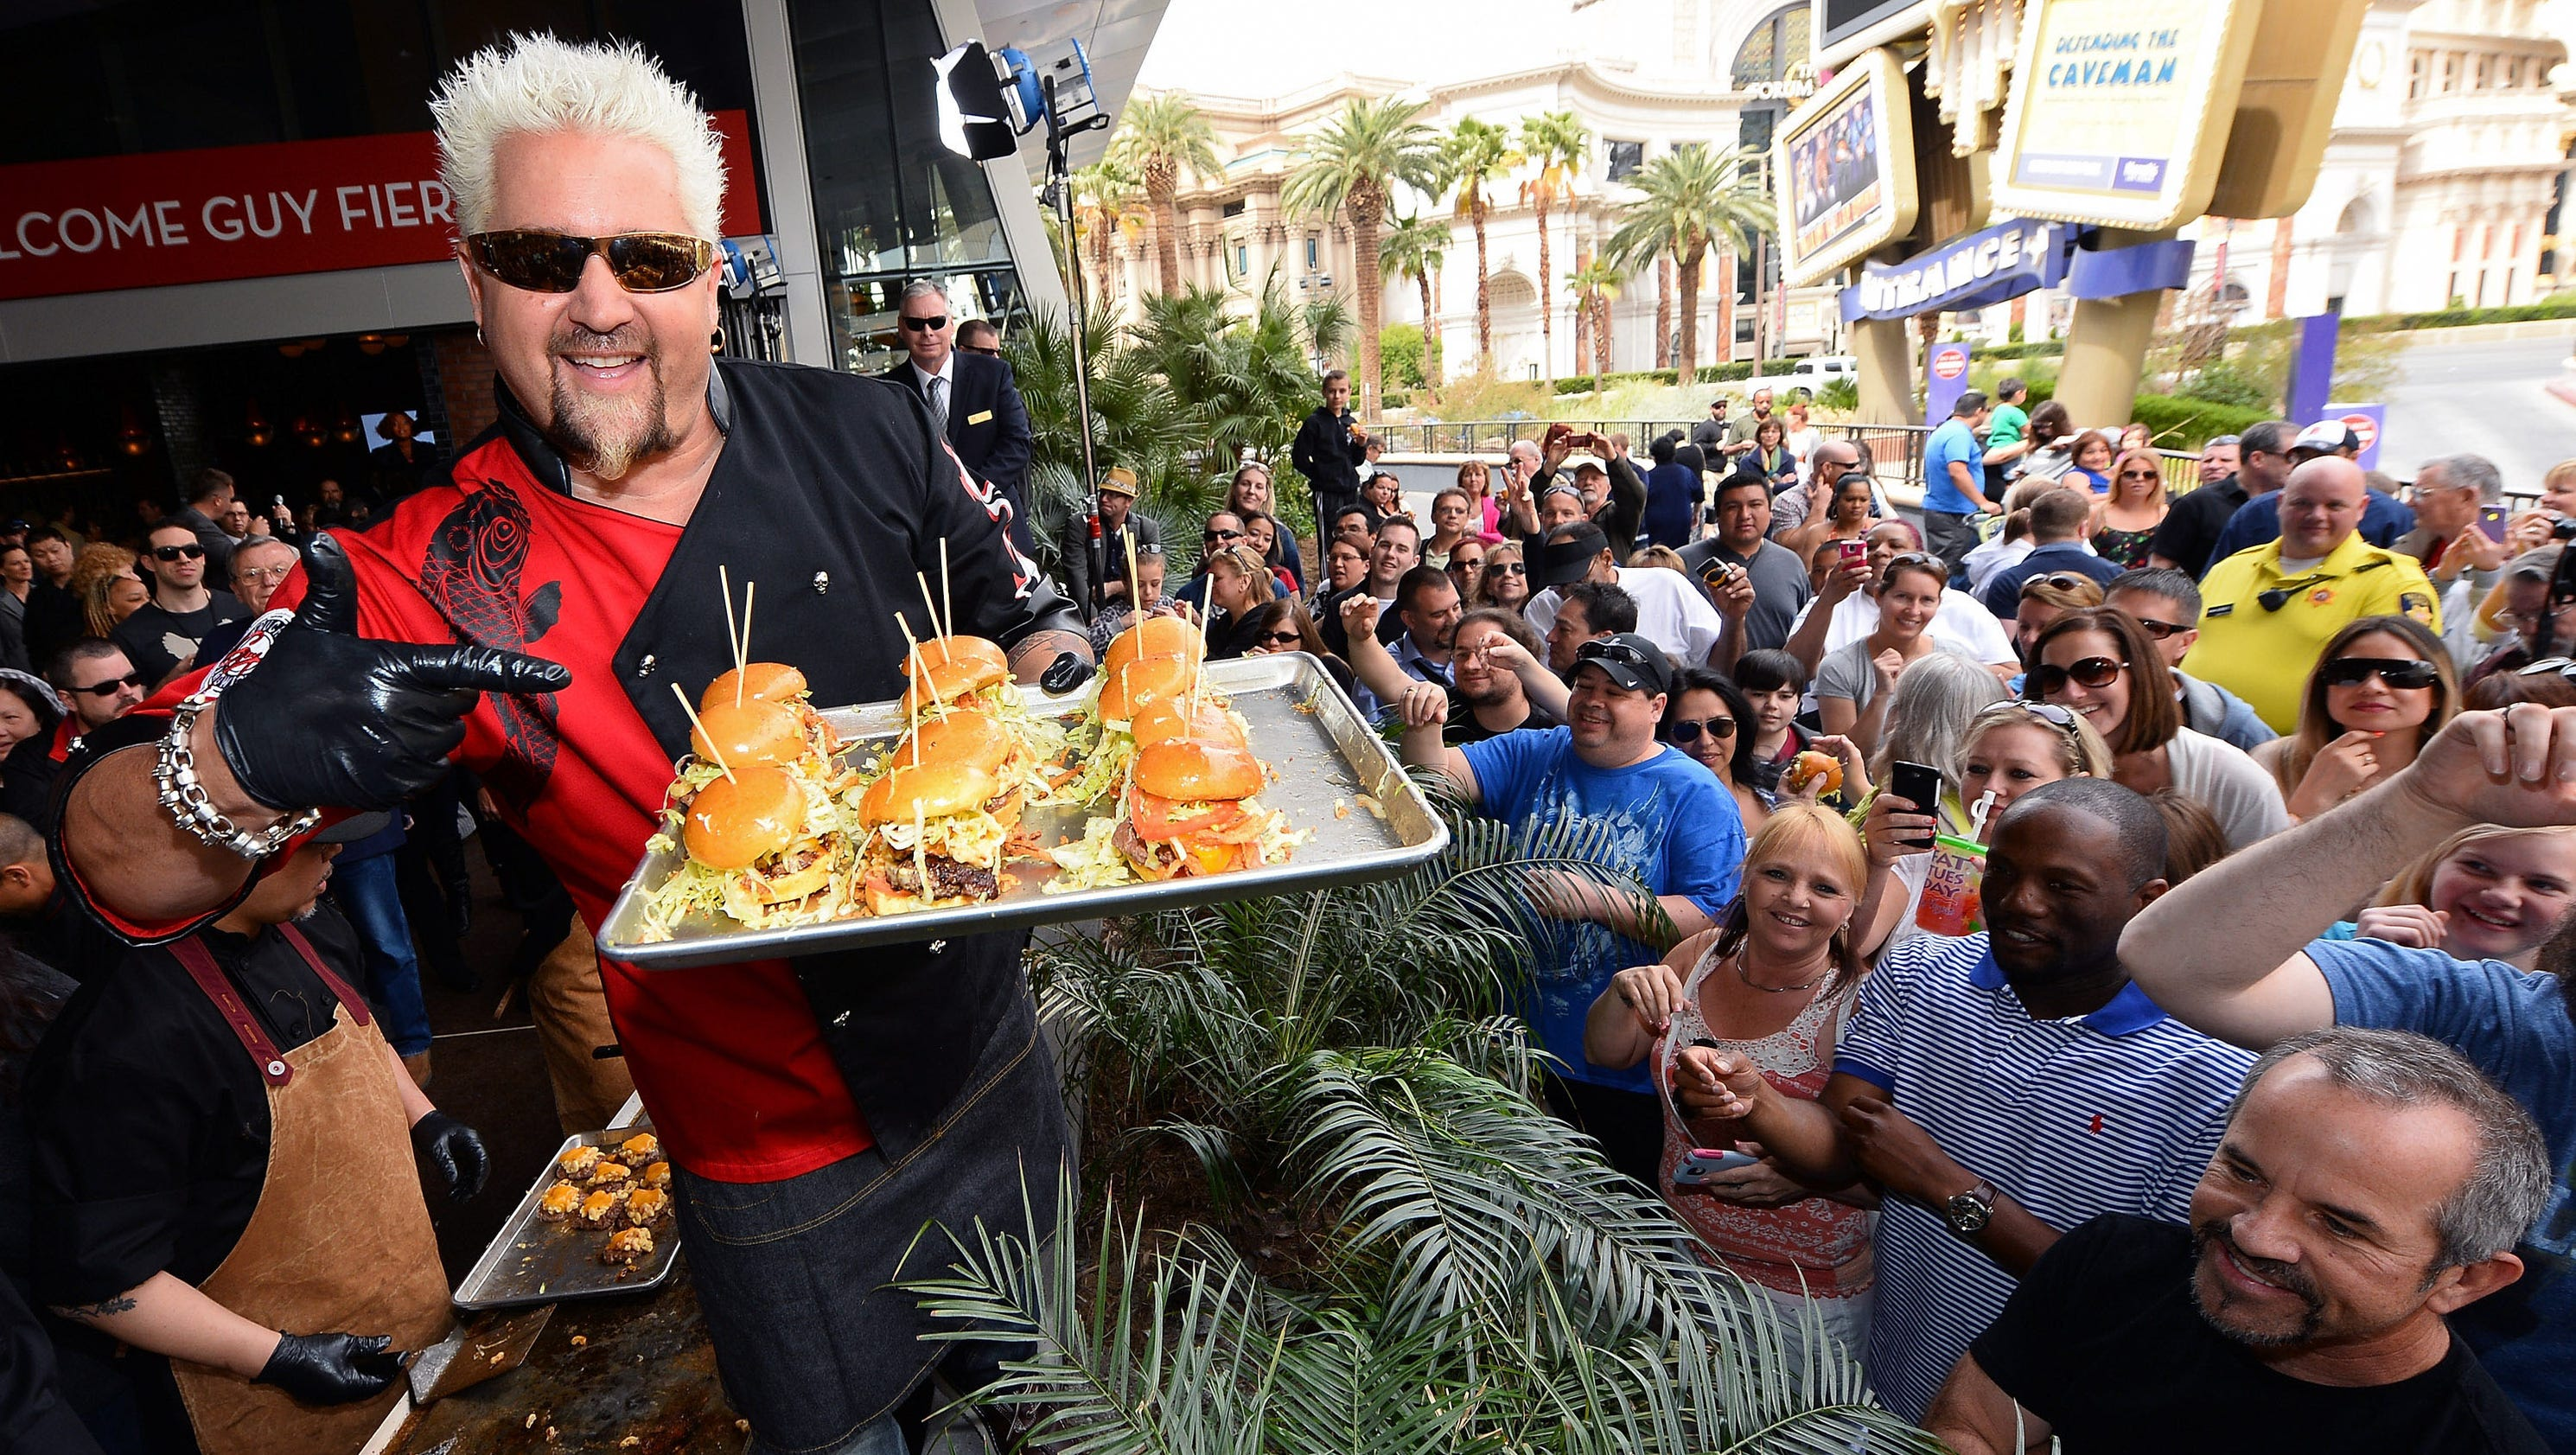 Guy fieri 39 s restaurants and signature dishes for 788 food bar argentina